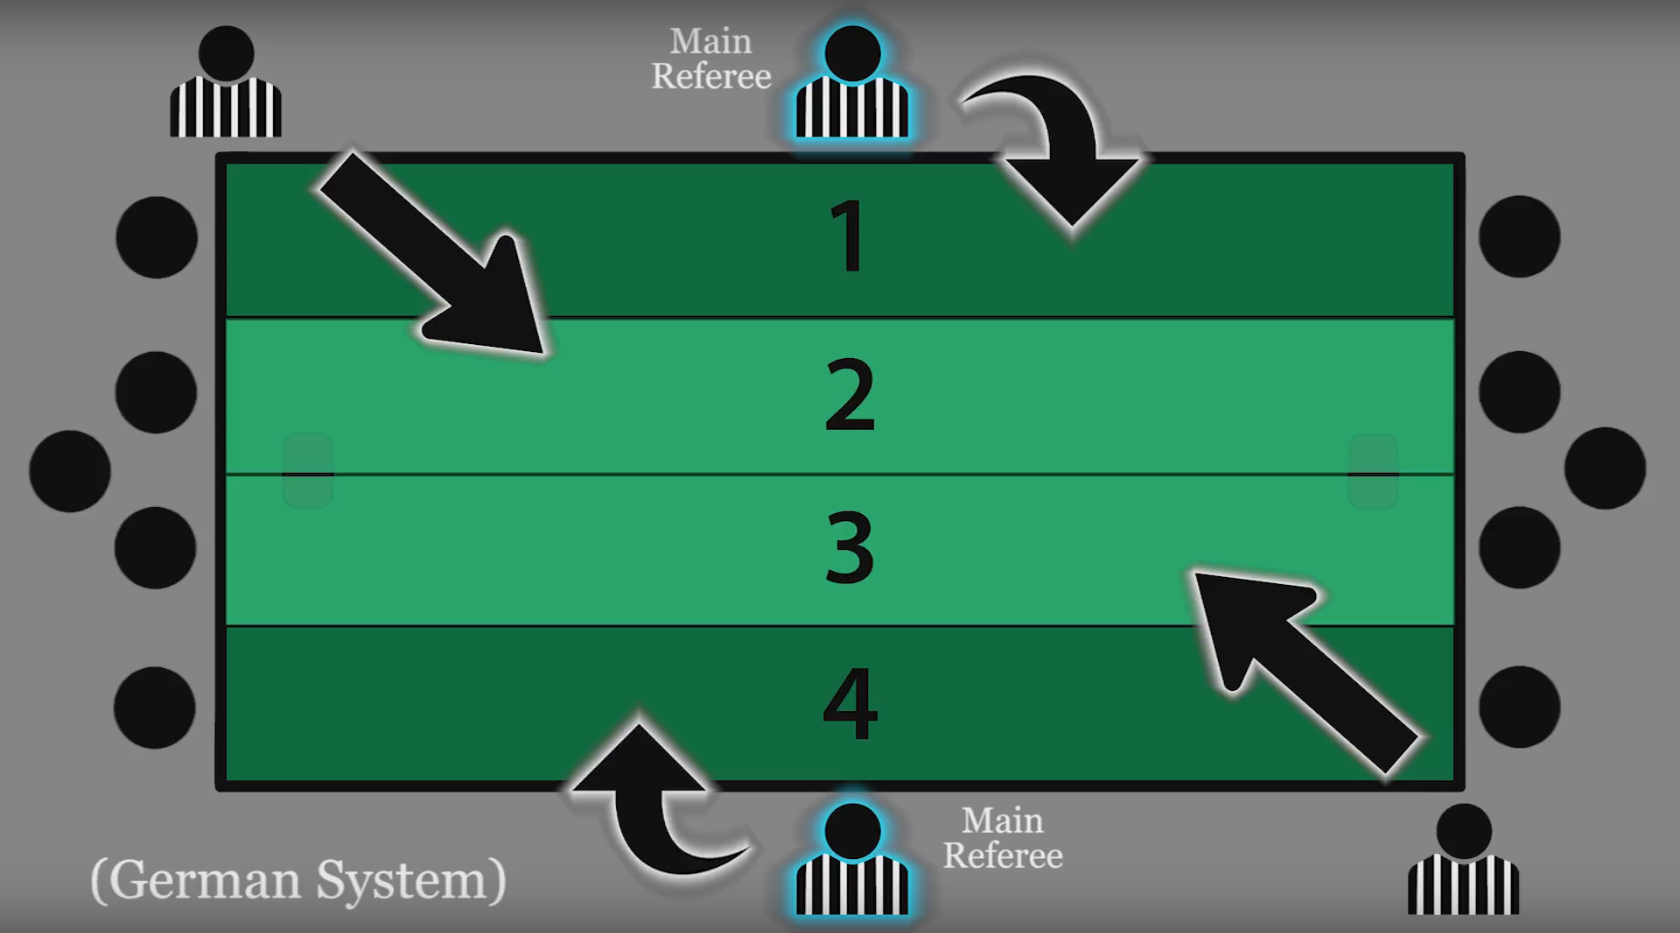 Current German Refereeing System